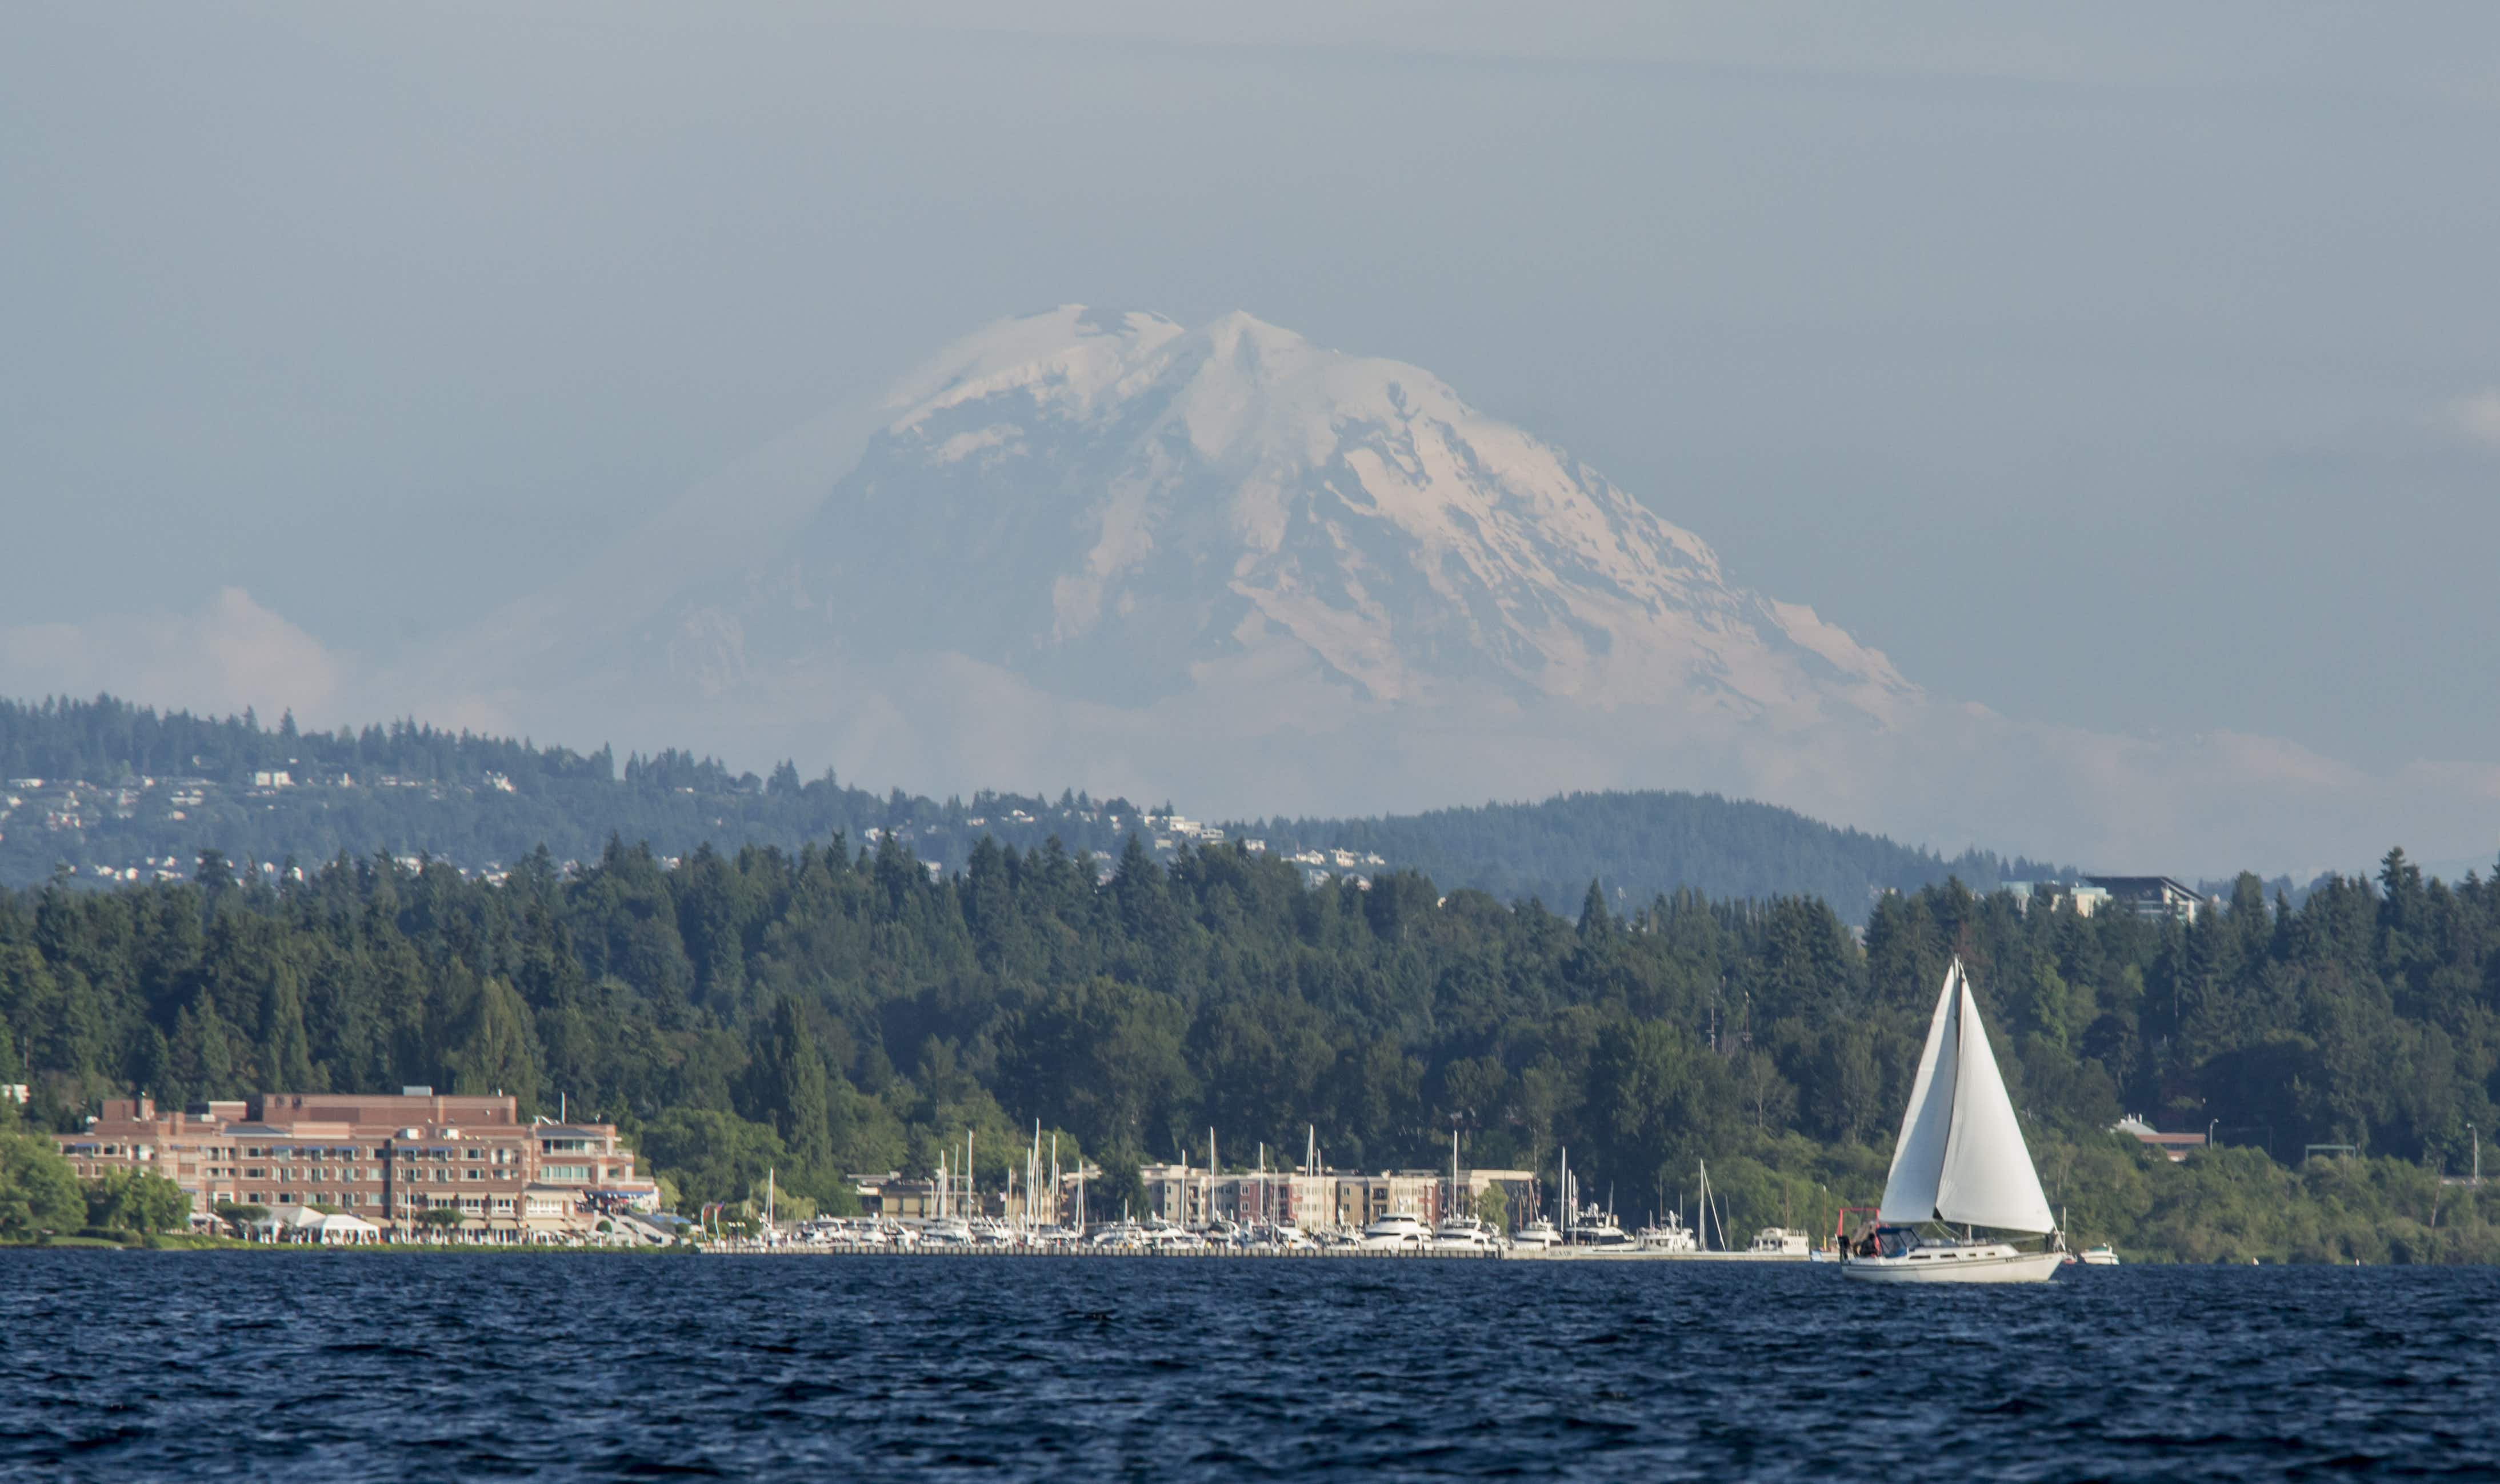 Like Seattle, Kirkland affords beautiful views of Mt. Rainier from a variety of scenic outdoor destinations within the city © John & Lisa Merrill via Getty Images